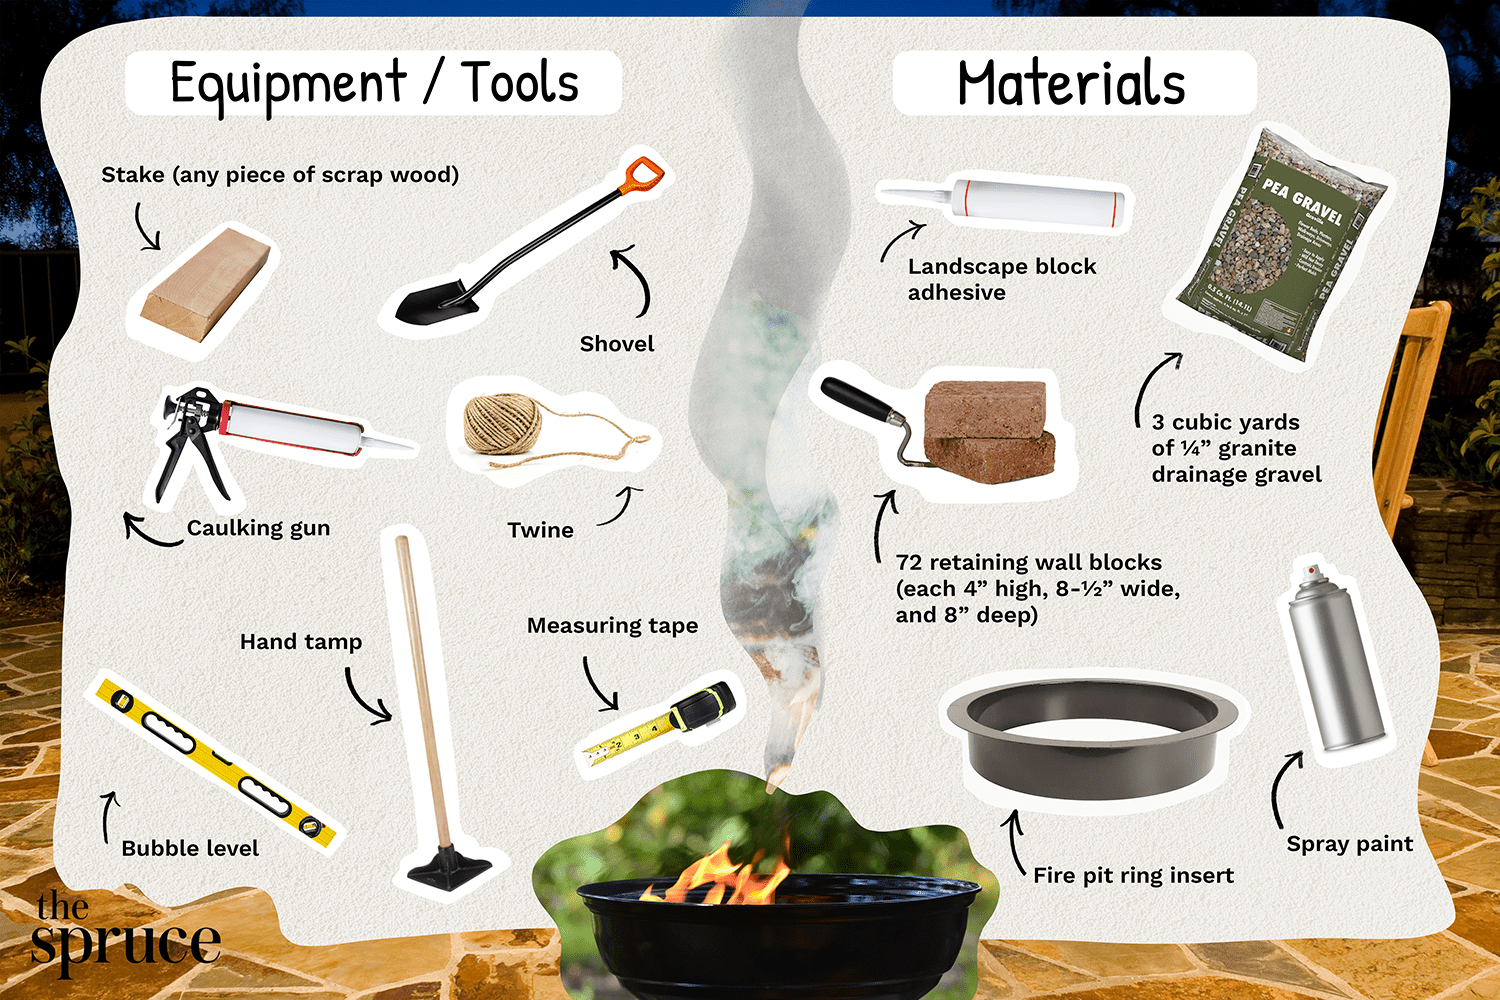 Materials and tools photo composite to build a fire pit